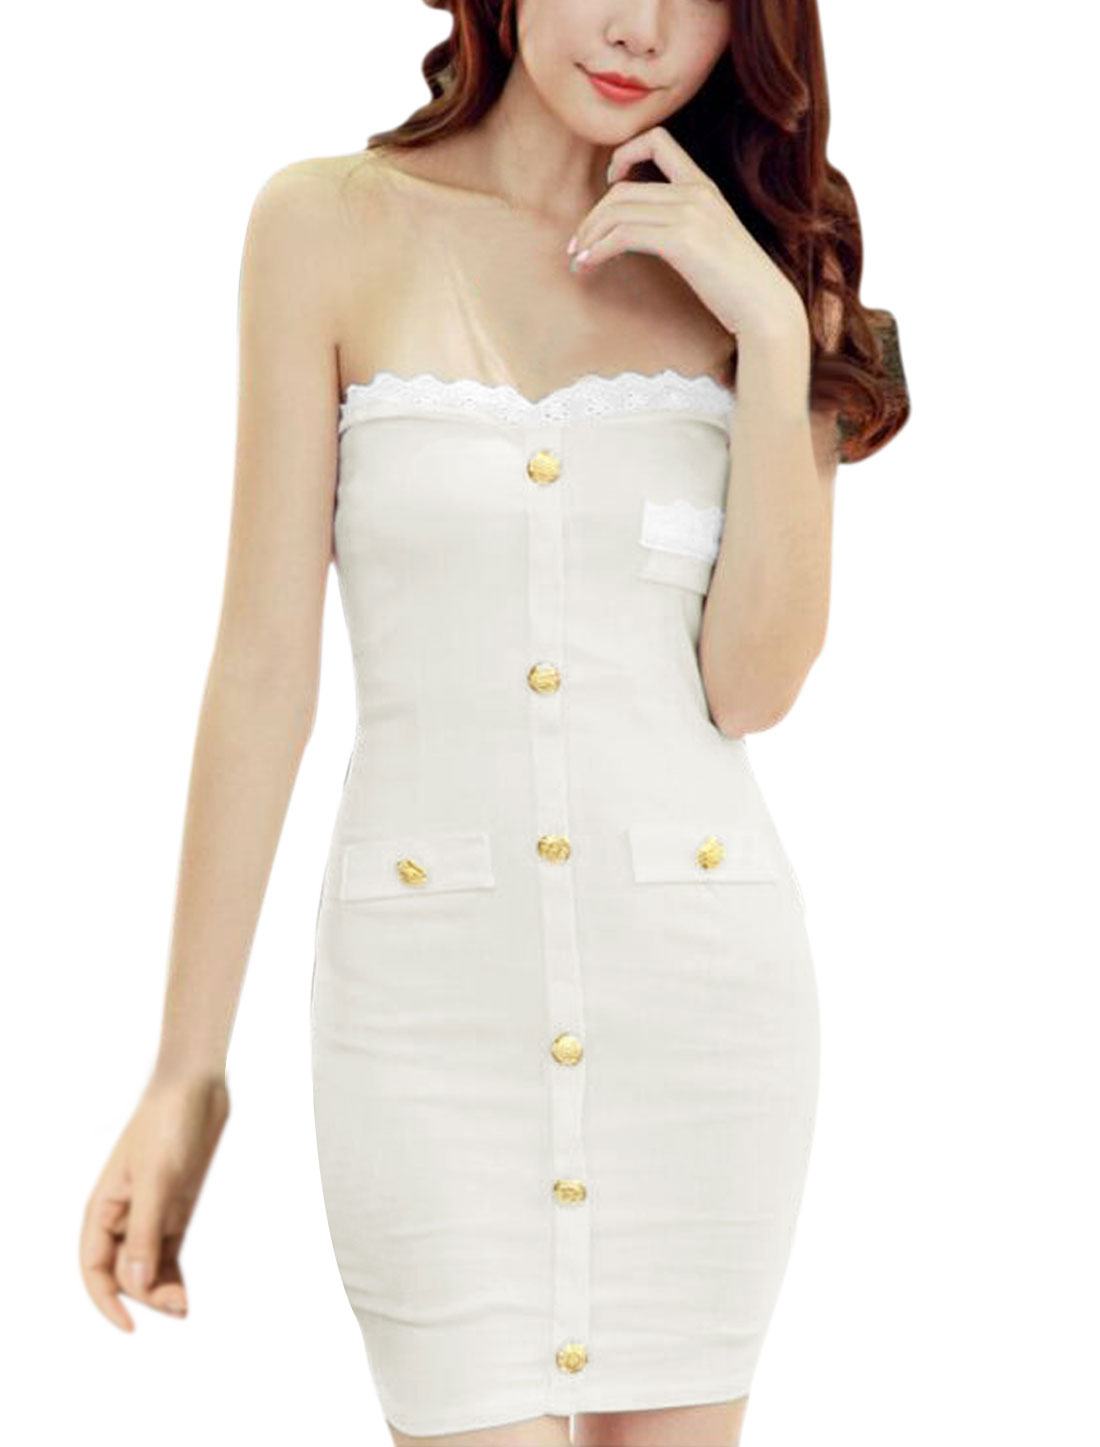 Lady Strapless Buttons Decor Crochet Patched Mini Sheath Dress White XS